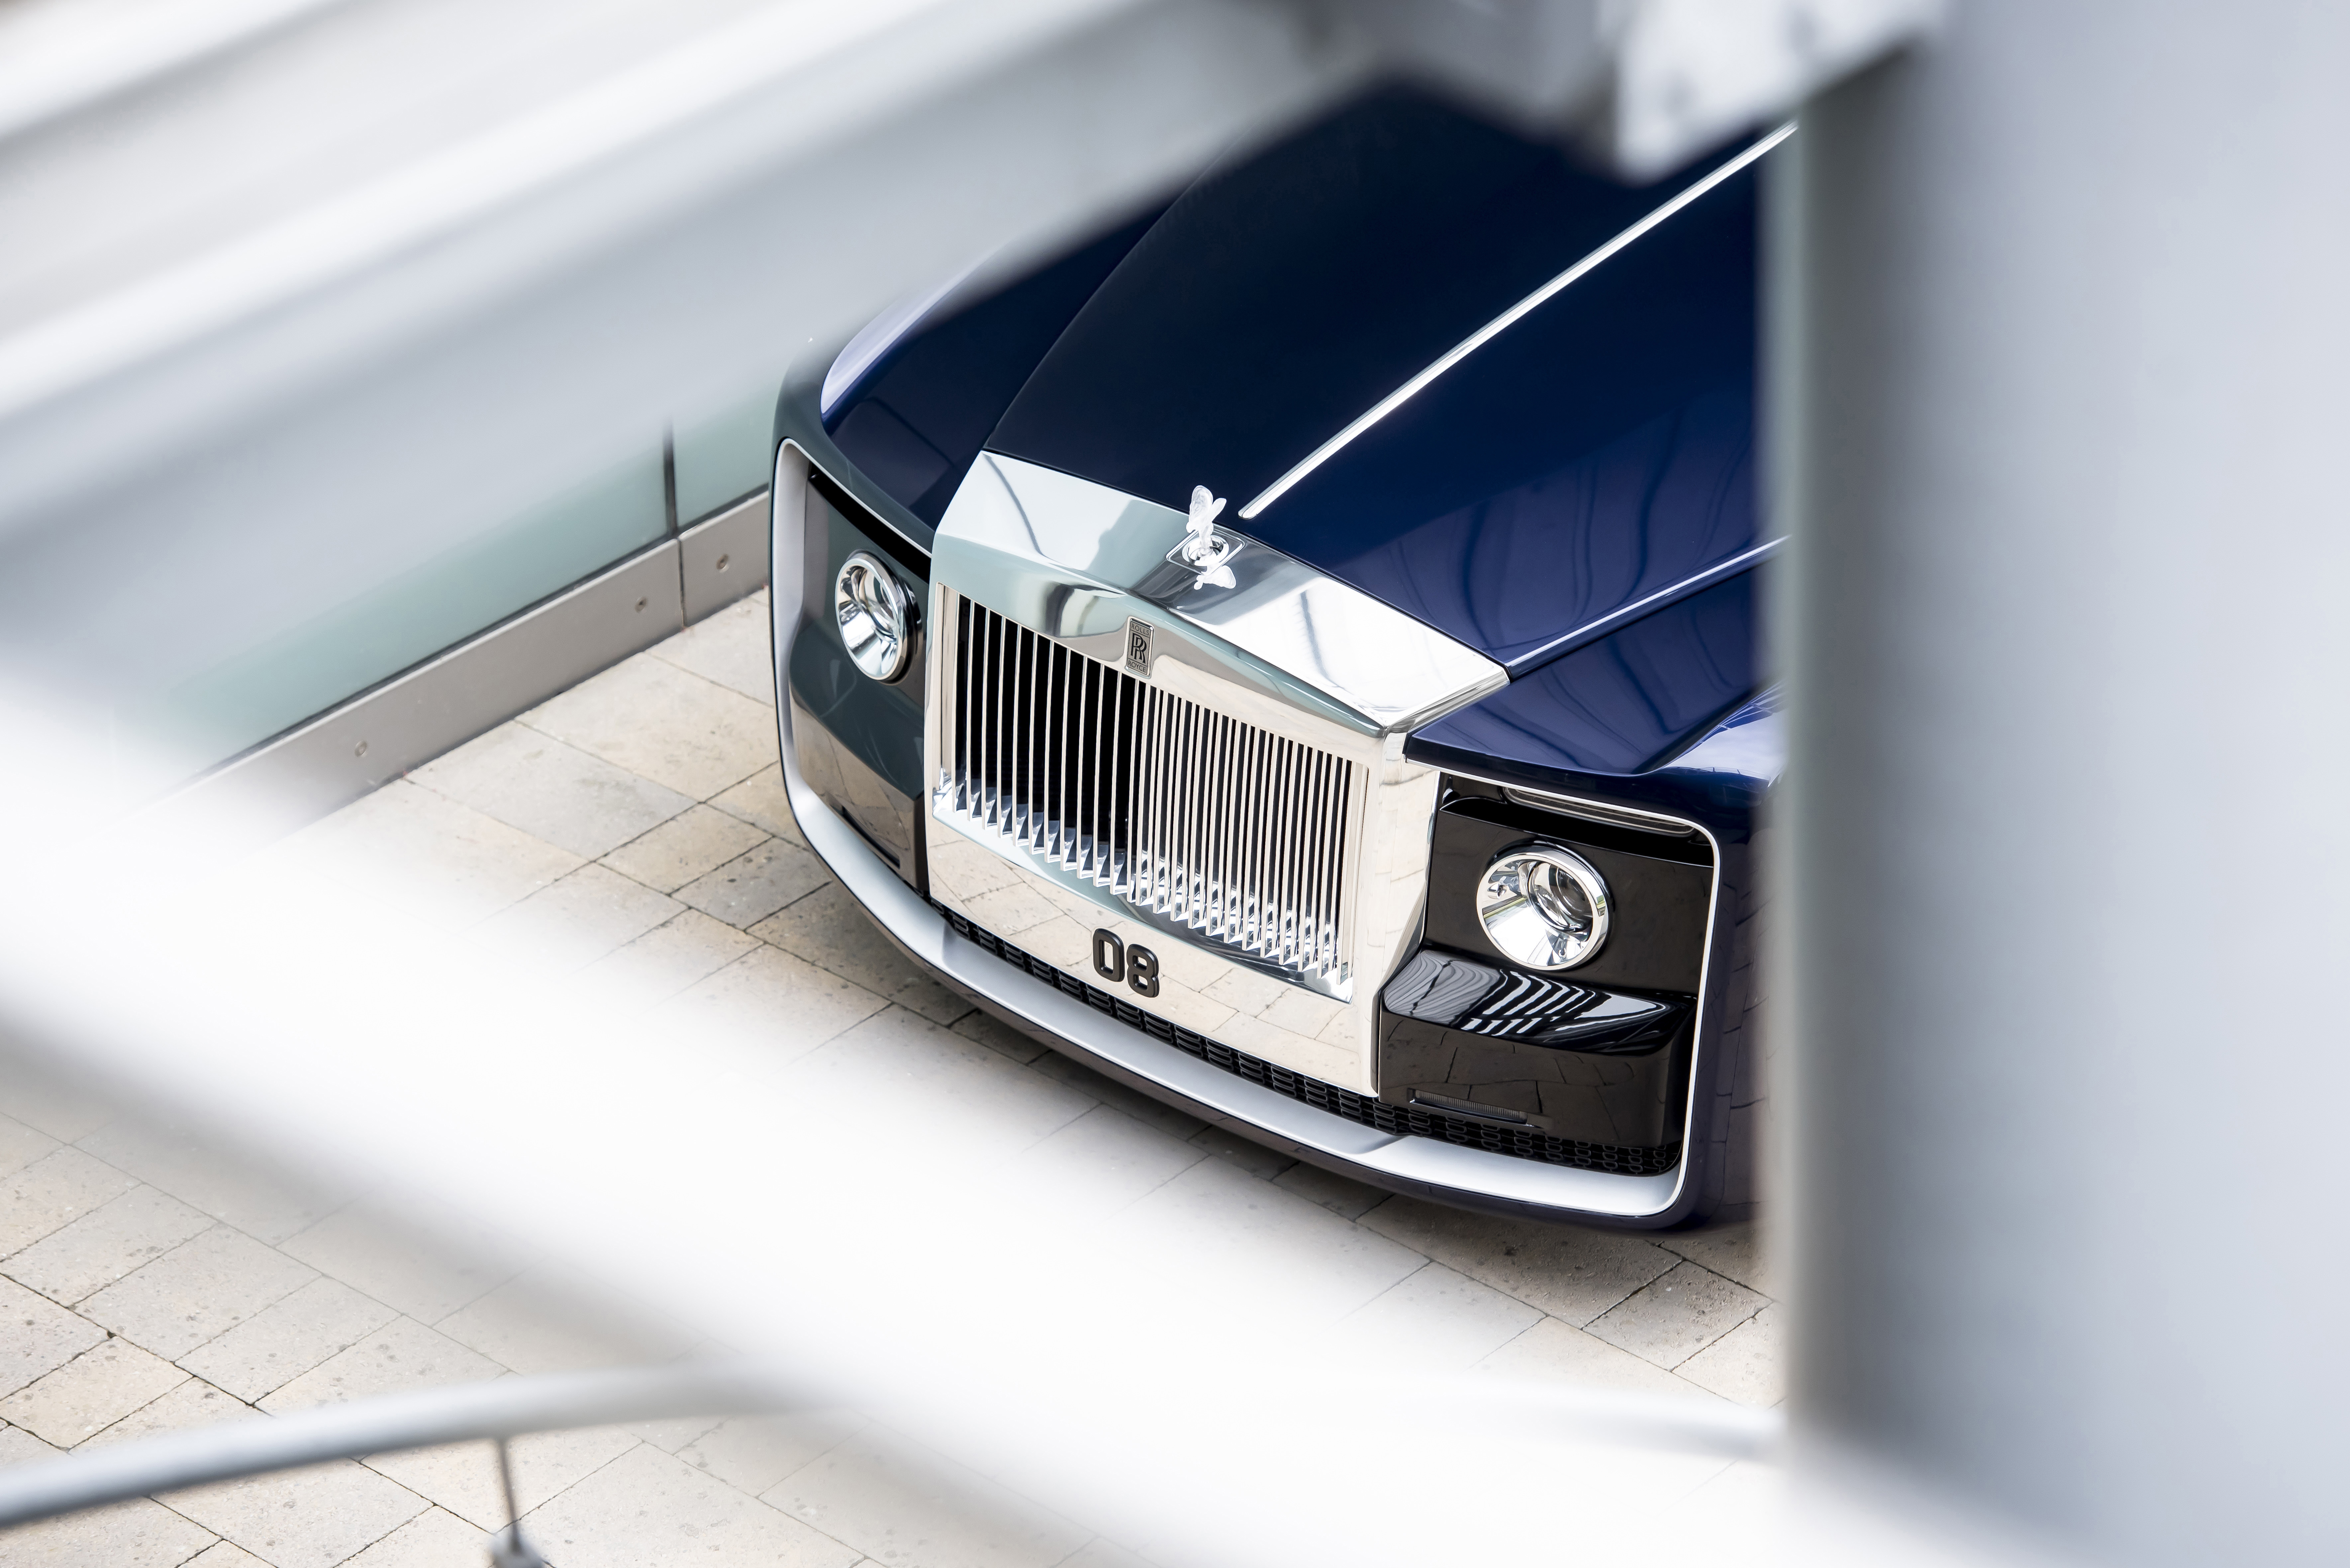 The Rolls-Royce Sweptail